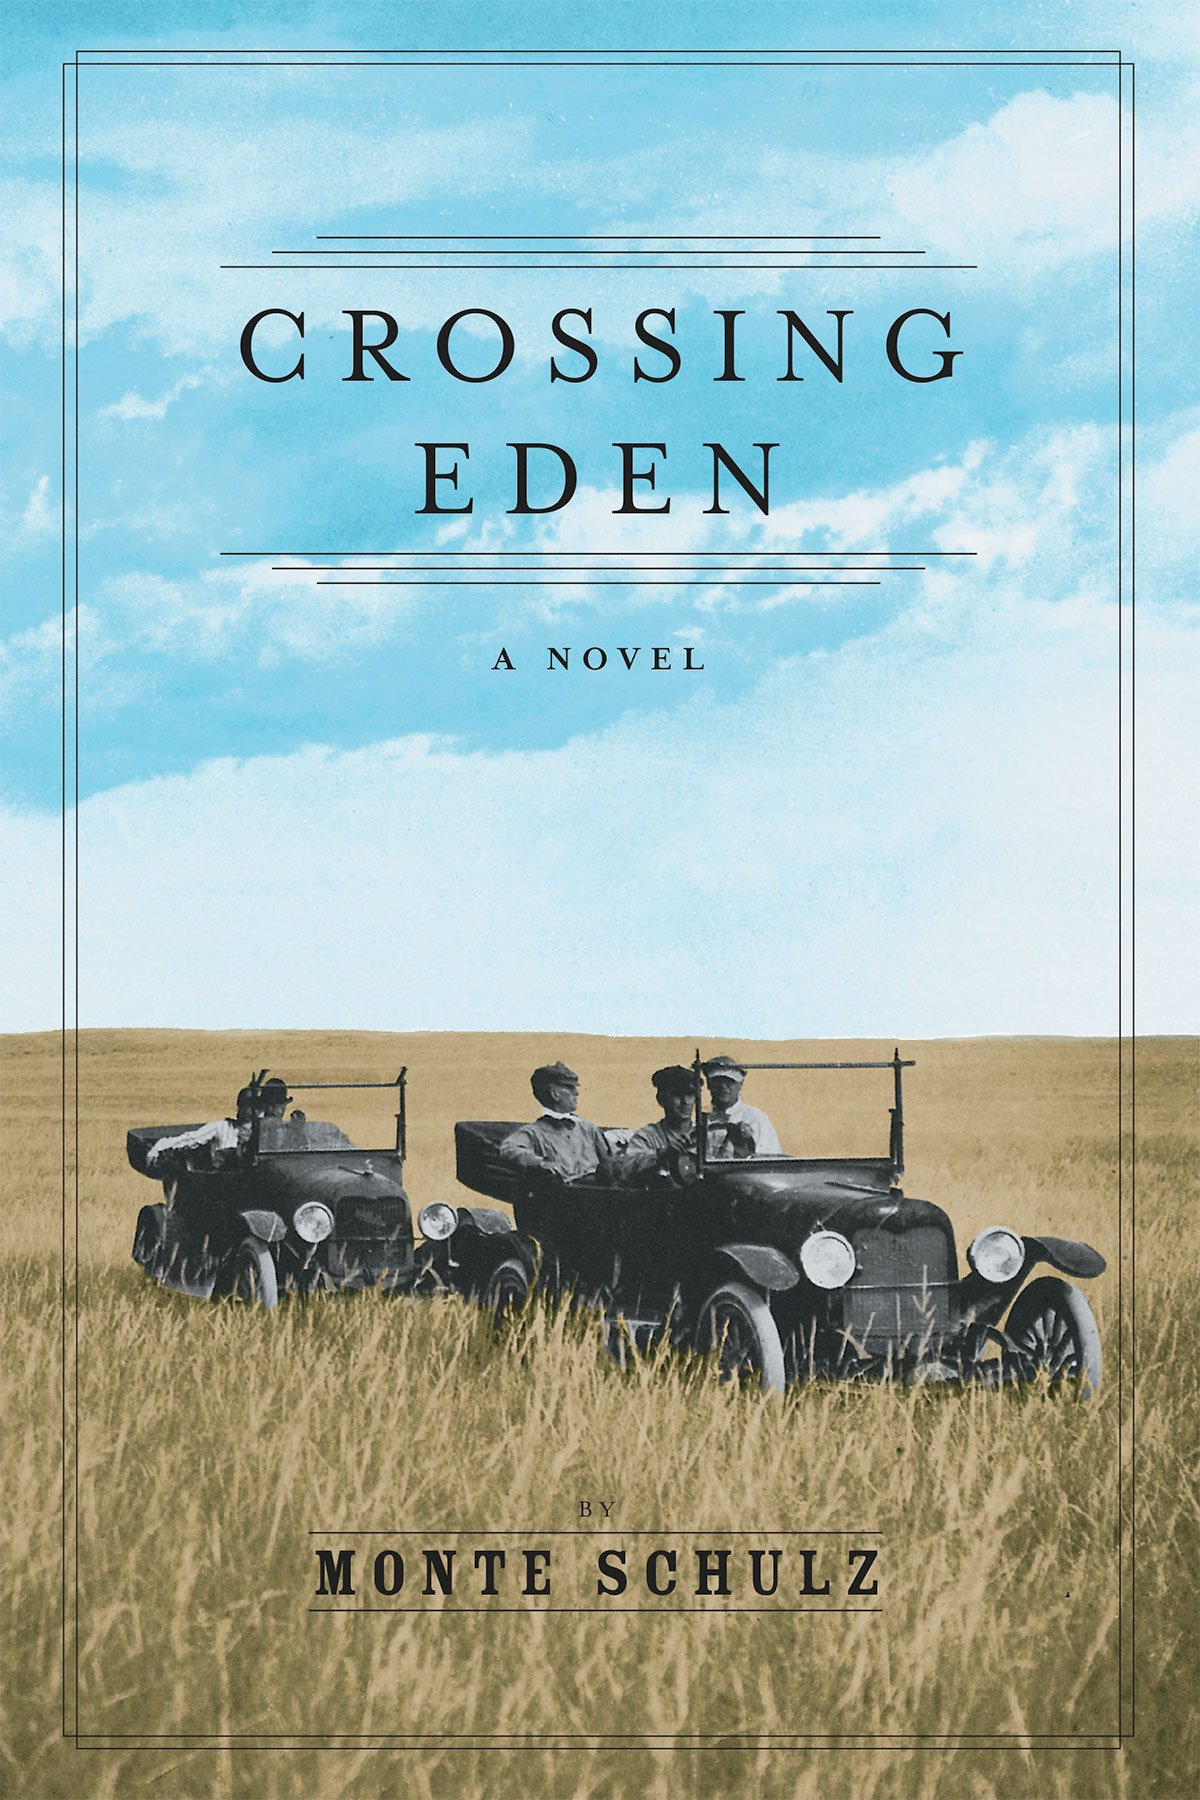 Monte Schulz's great American novel, Crossing Eden, will be published this month.